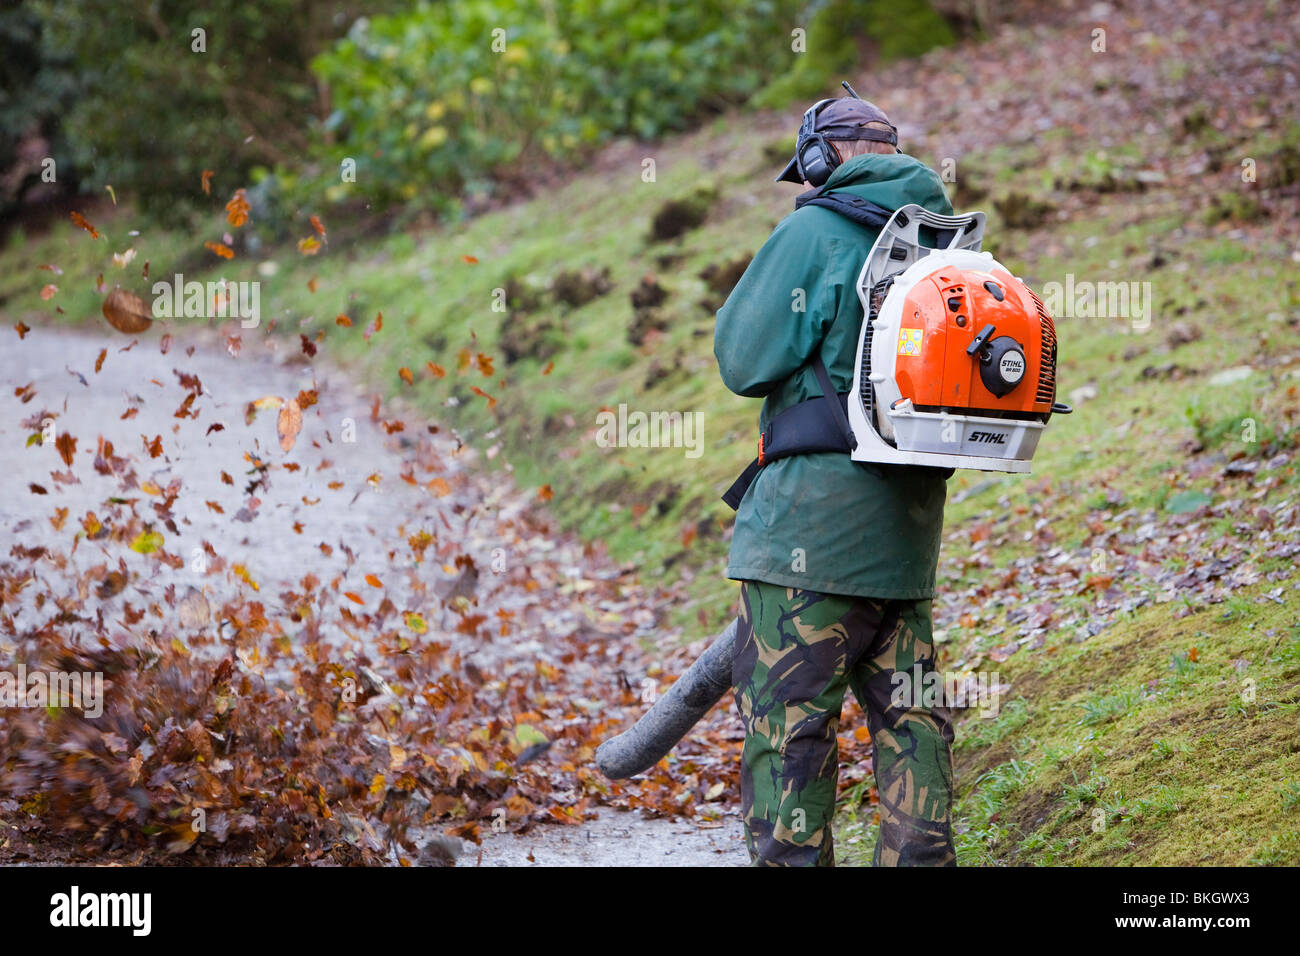 A Gardener Using A Leaf Blower In A Garden Uk Stock Photo